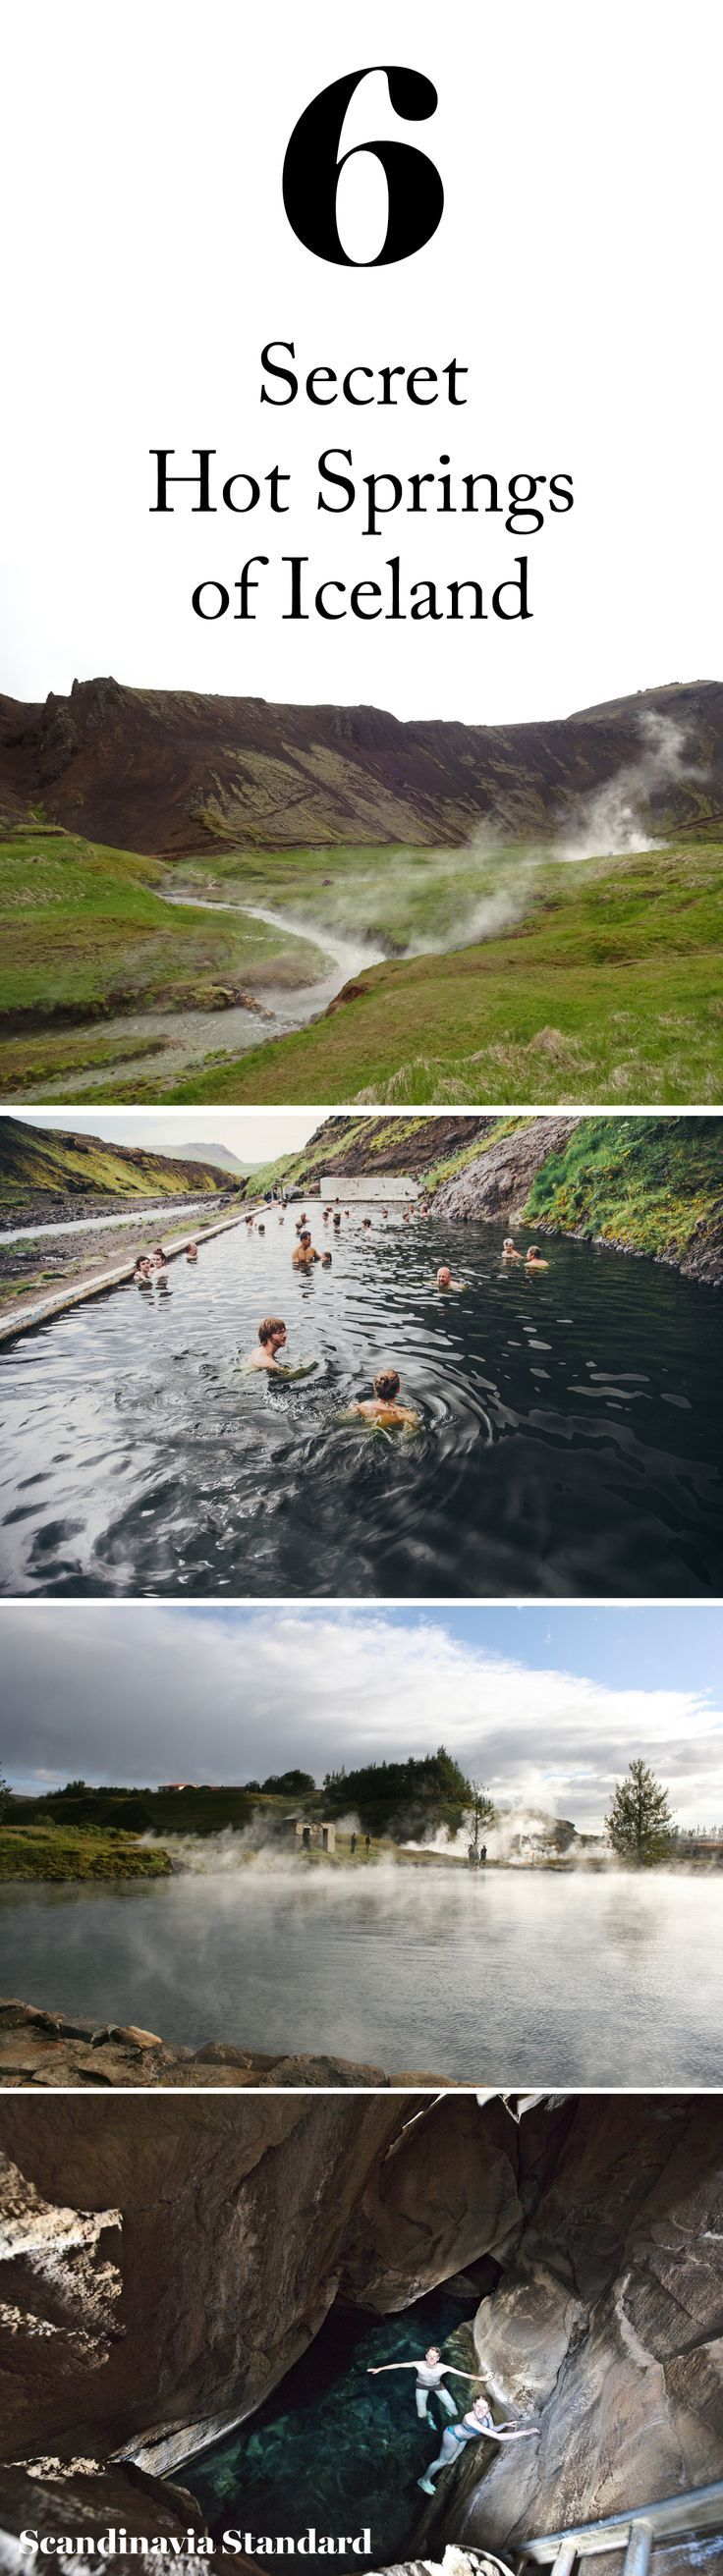 Iceland is full of natural geothermally heated 'spa's' that are frequented by locals and tourists alike!